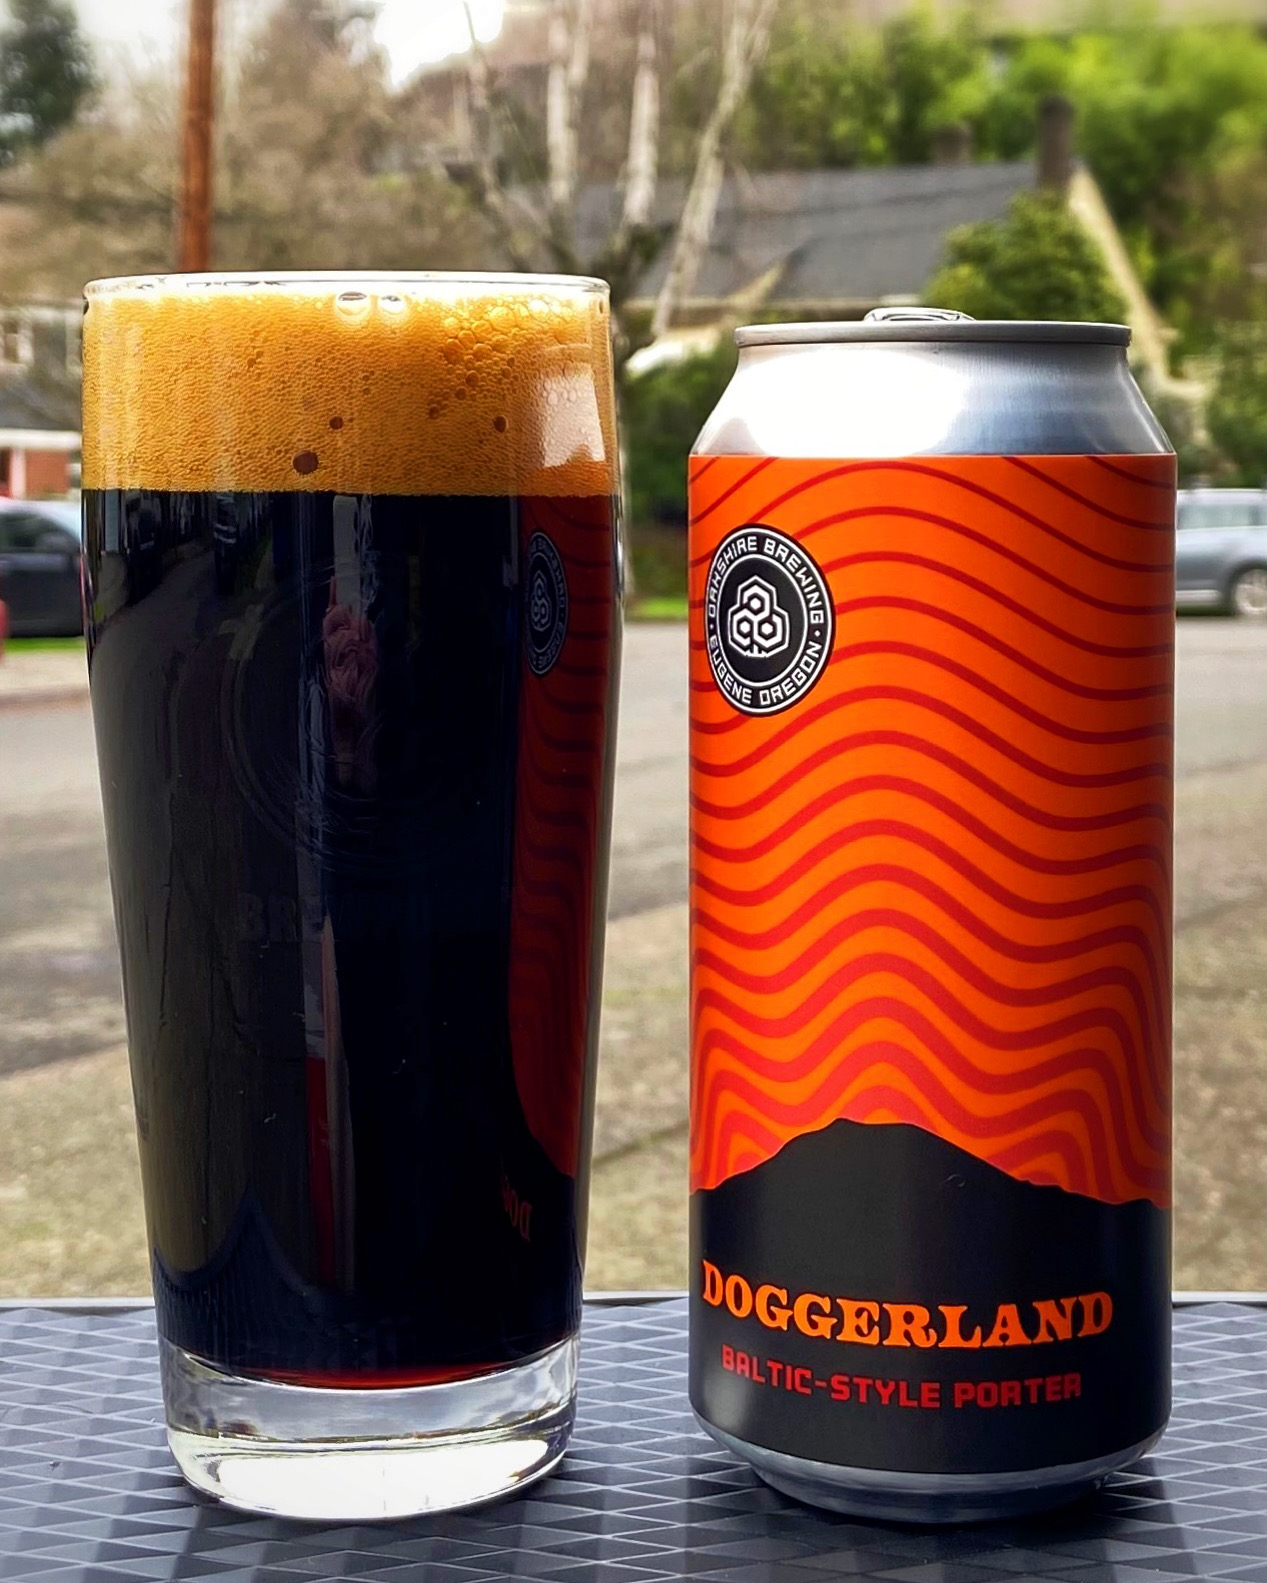 A glass pour of Doggerland Baltic-Style Porter from Oakshire Brewing.